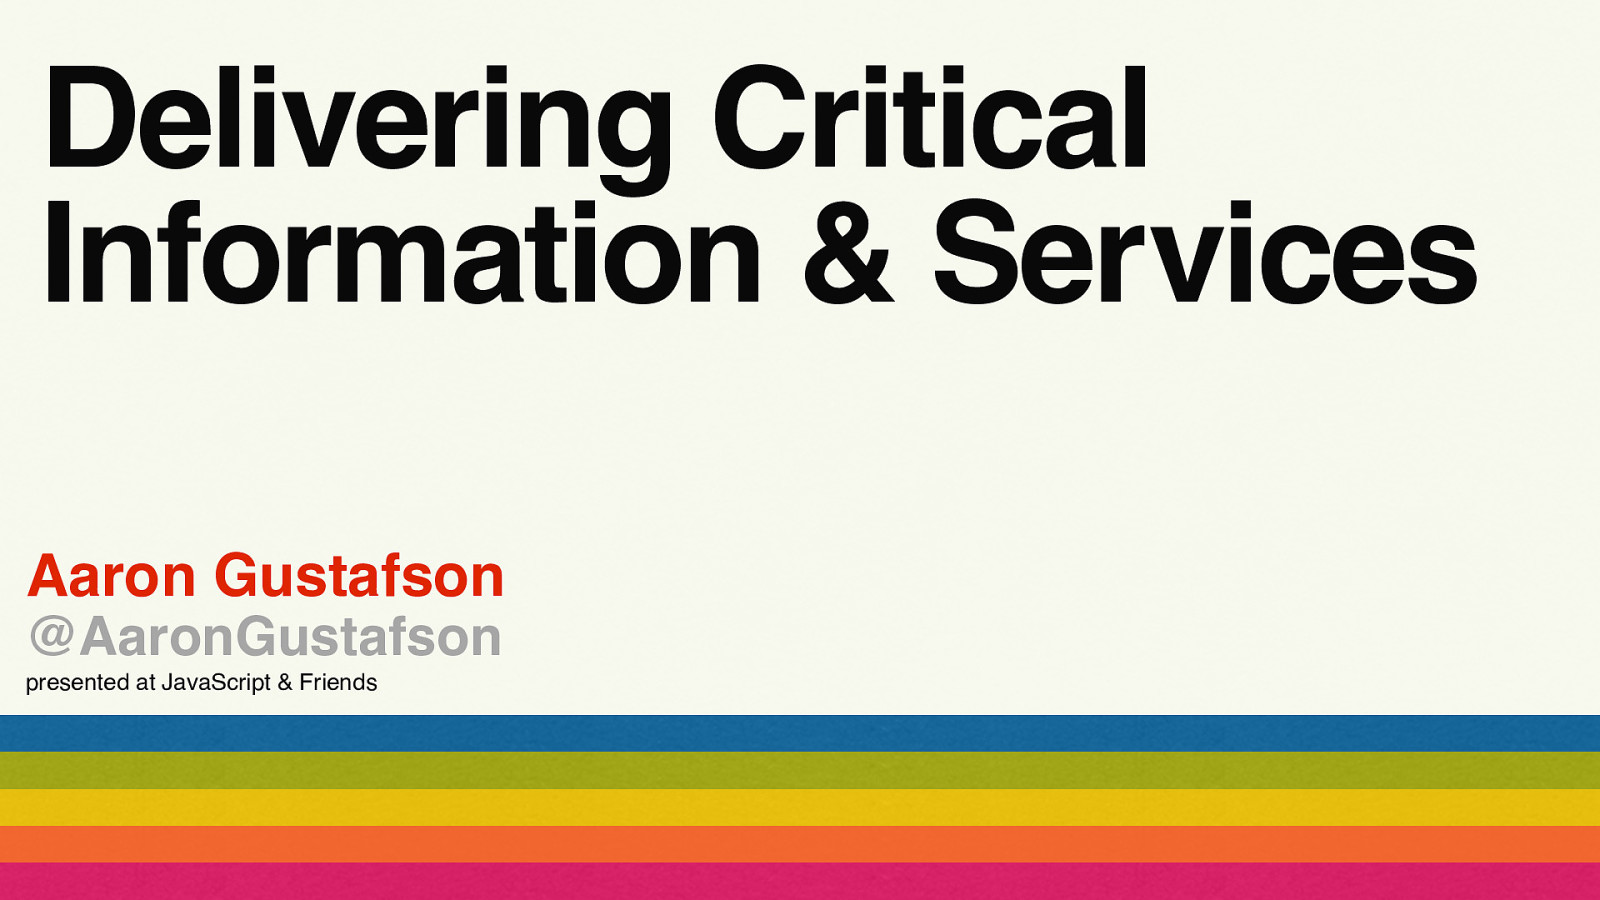 Delivering Critical Information & Services by Aaron Gustafson